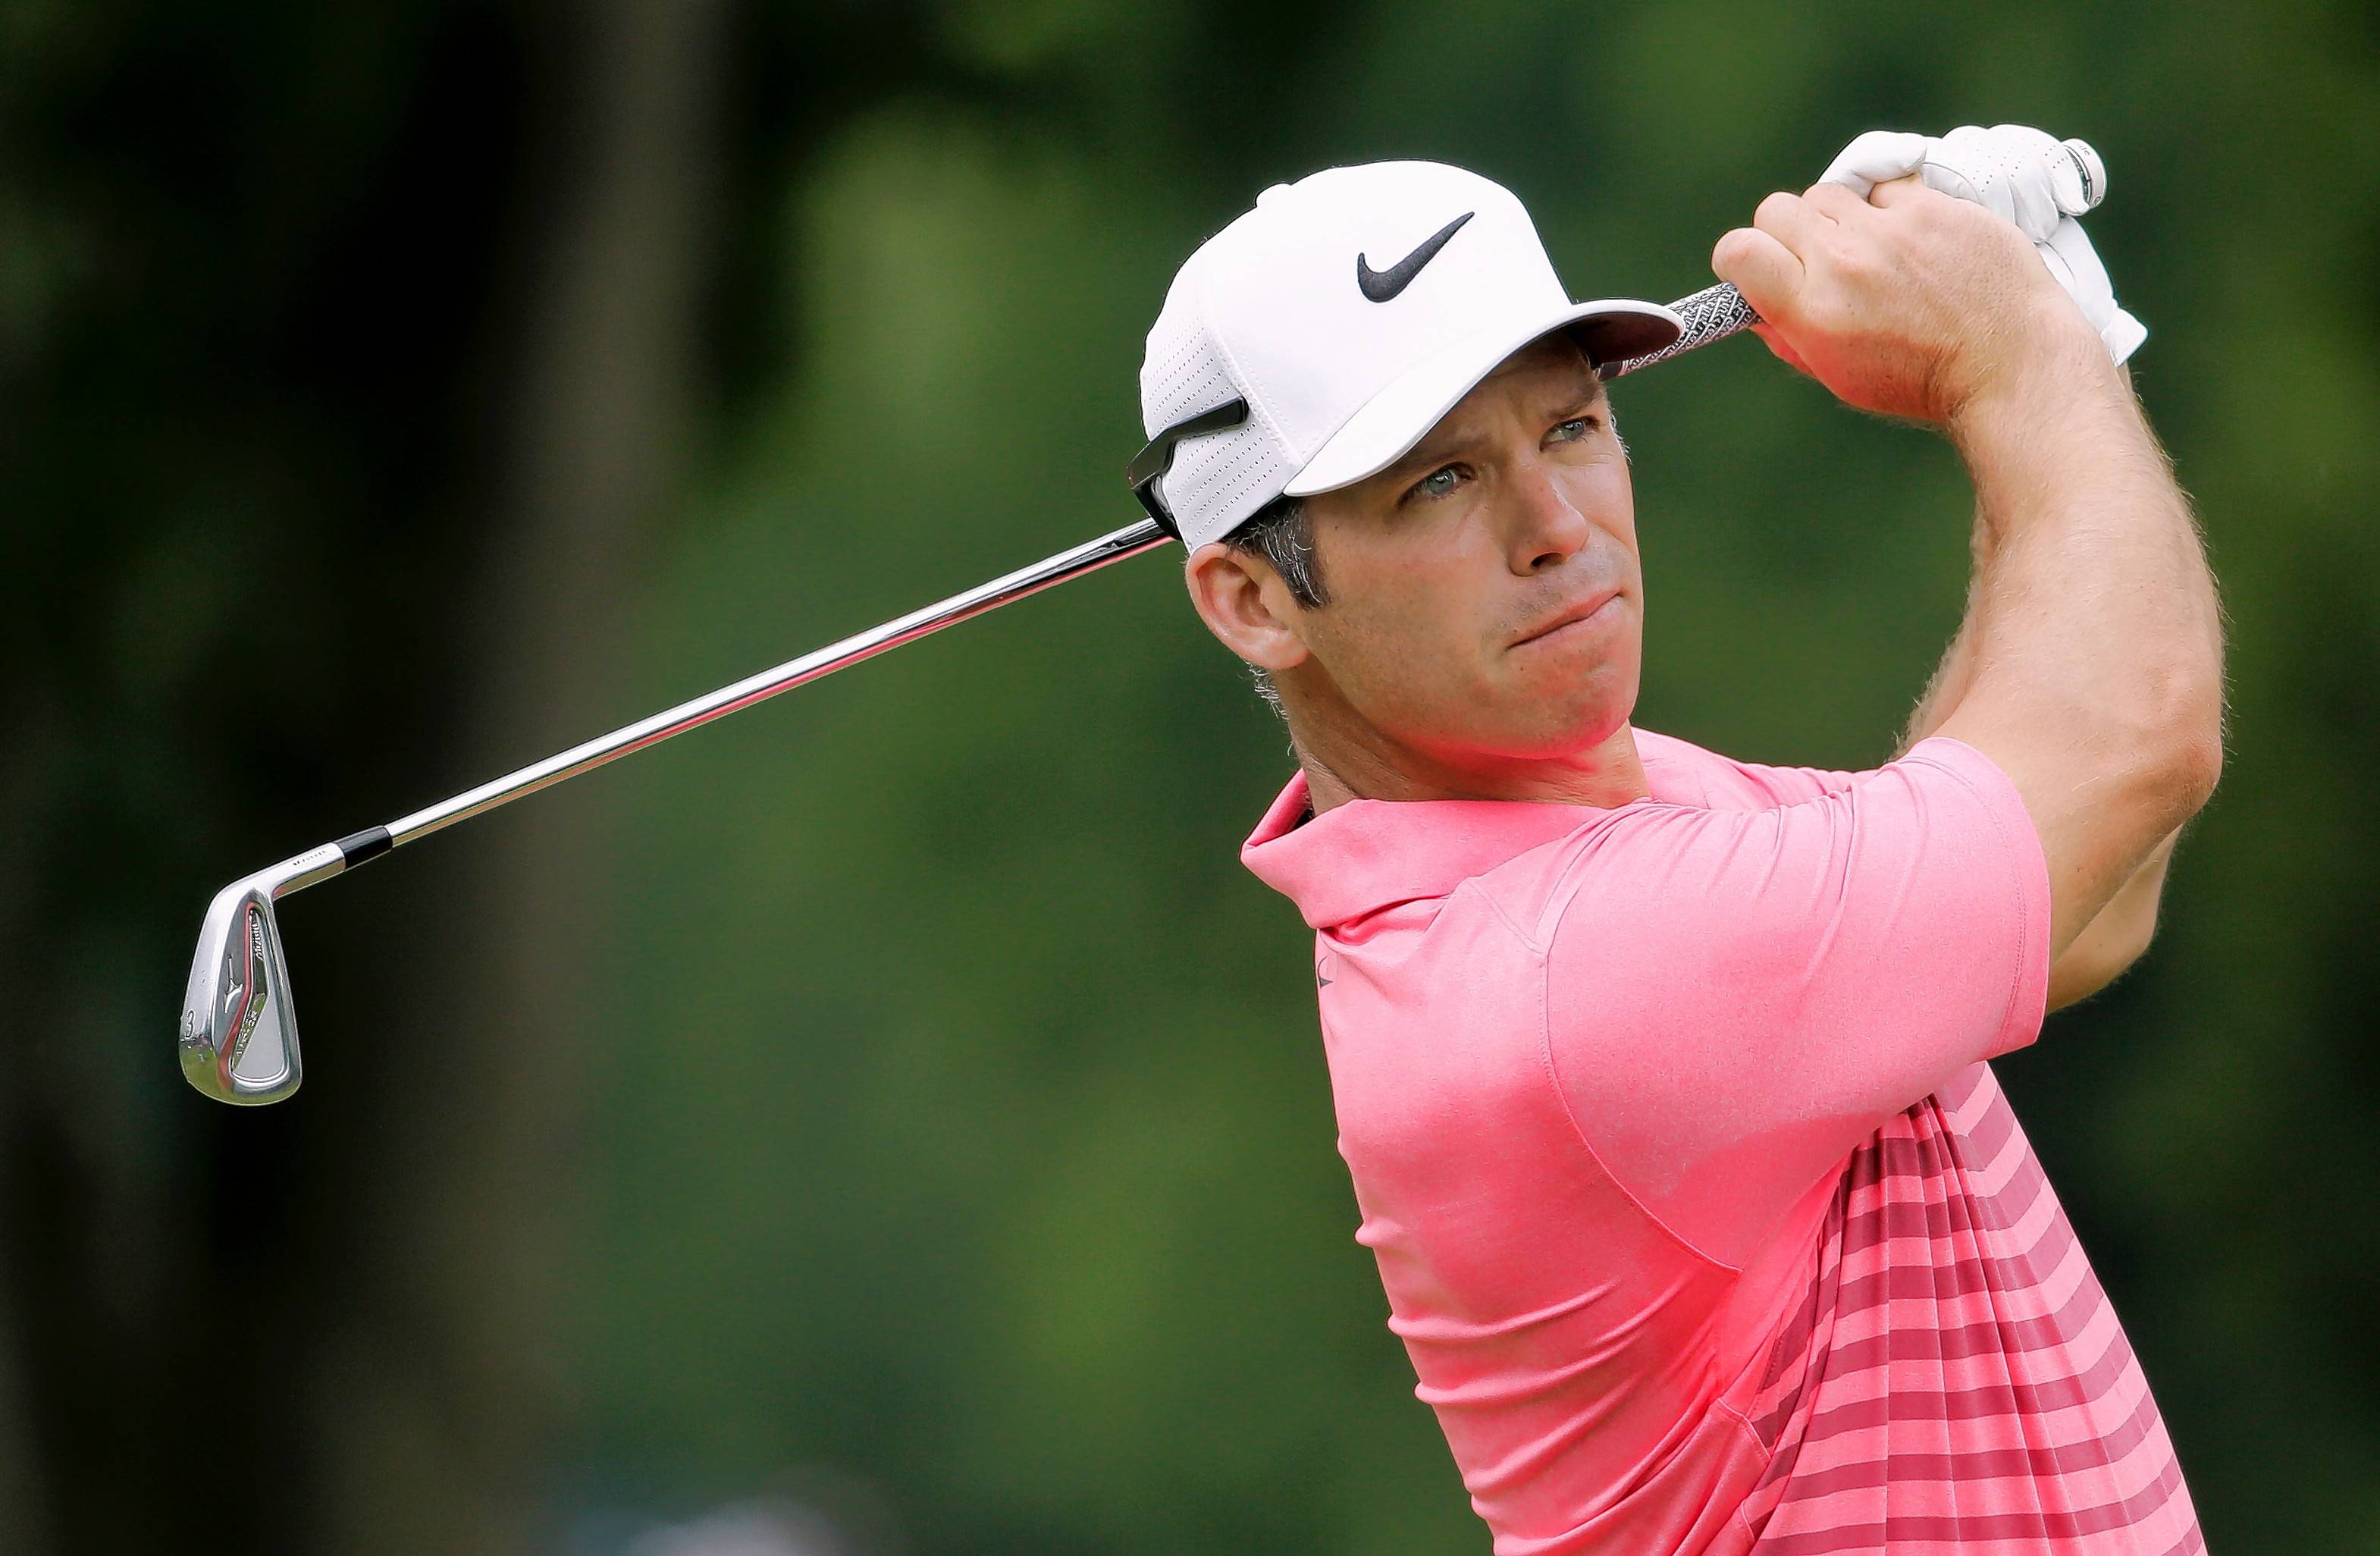 Paul Casey of England has a history of playing well in the FedEx Cup Playoffs. Tickets for the next month's BMW Championship at Conway Farms are available at bmwchampionshipusa.com.